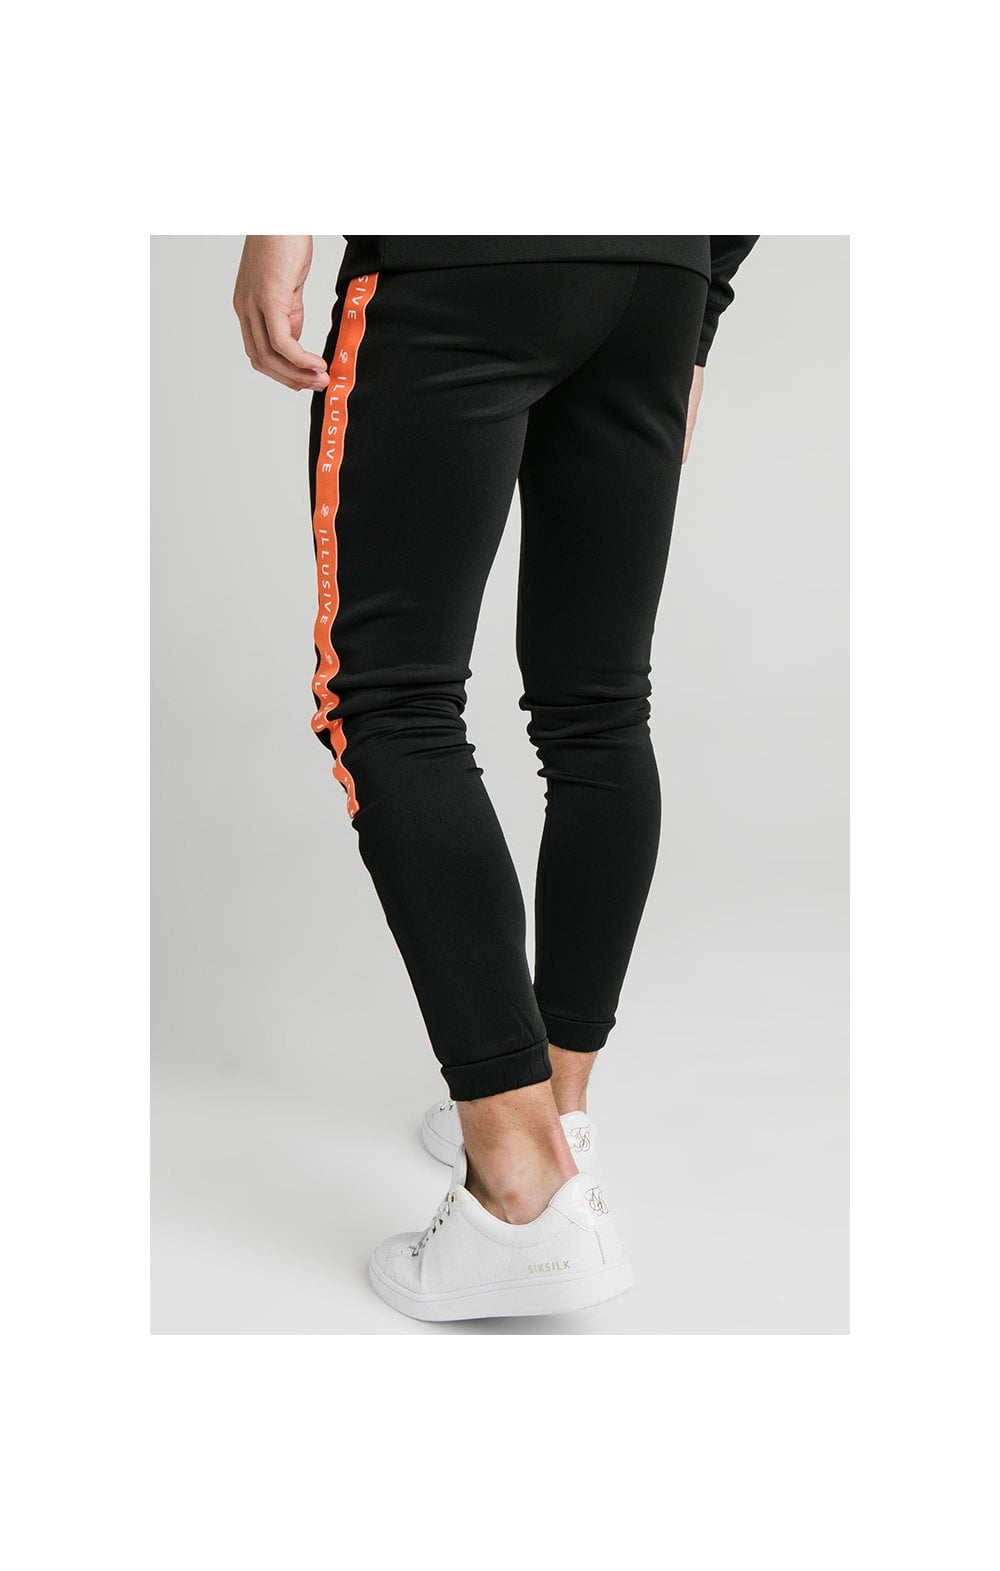 Illusive London Tape Joggers - Black (6)